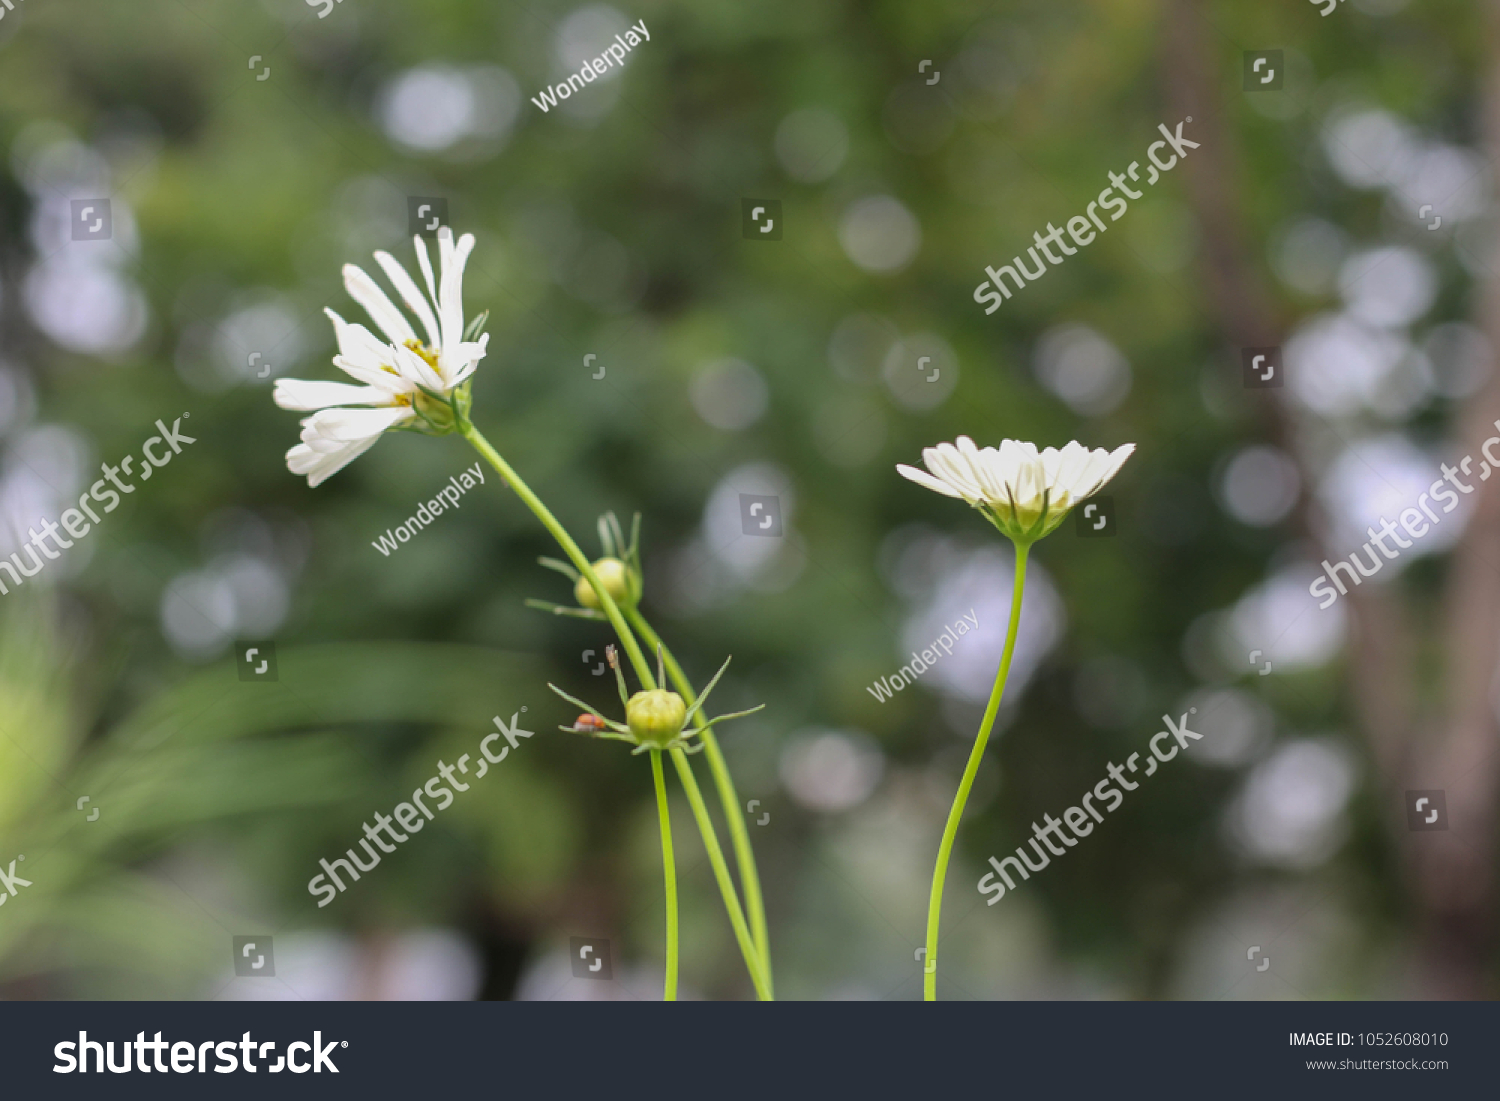 Field White Cosmo Flowers Day Blooming Stock Photo Royalty Free